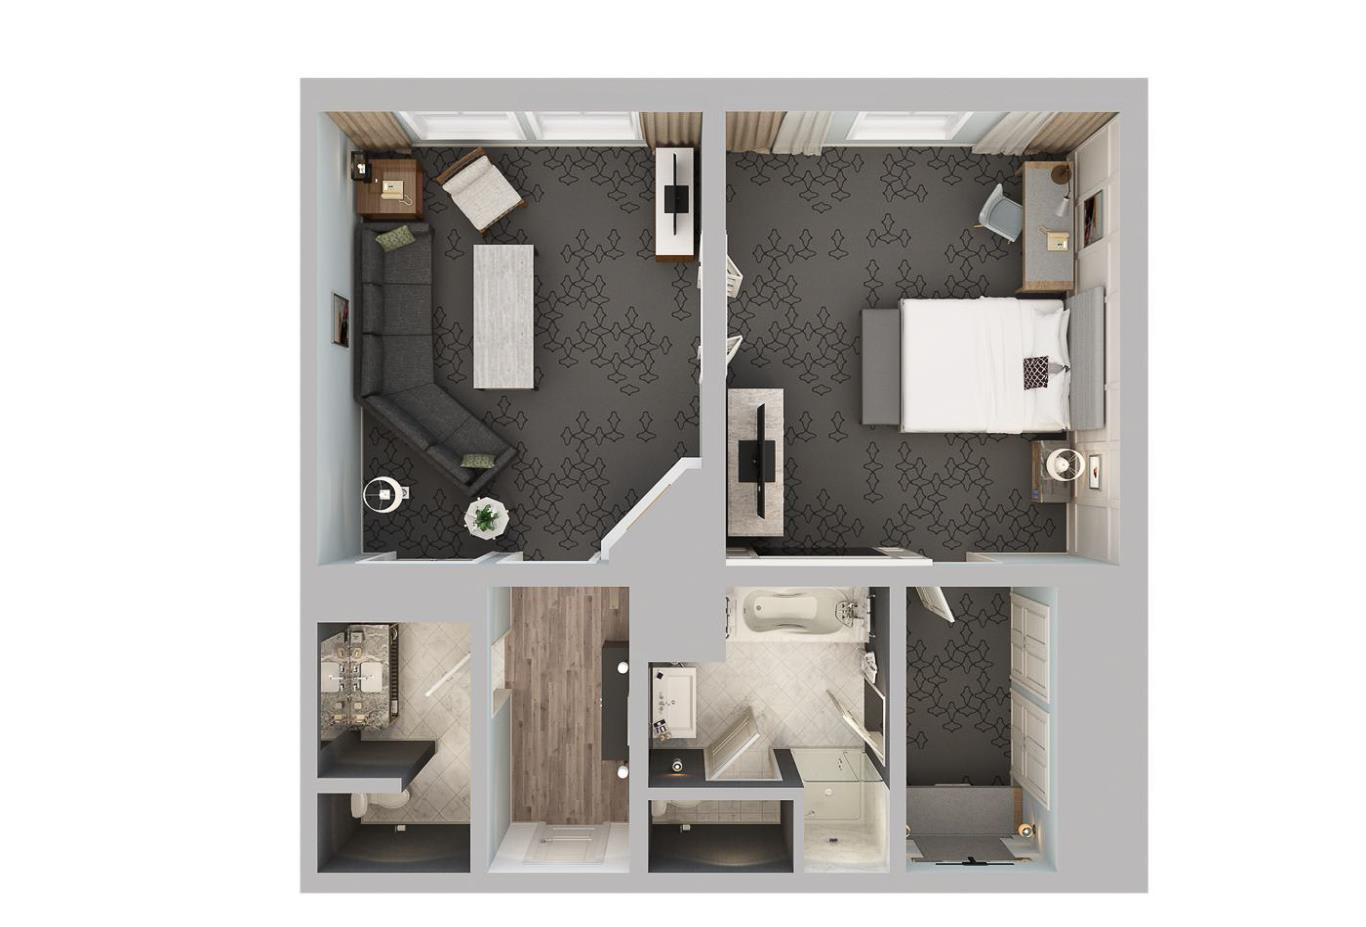 Courtyard View Suite floorplan